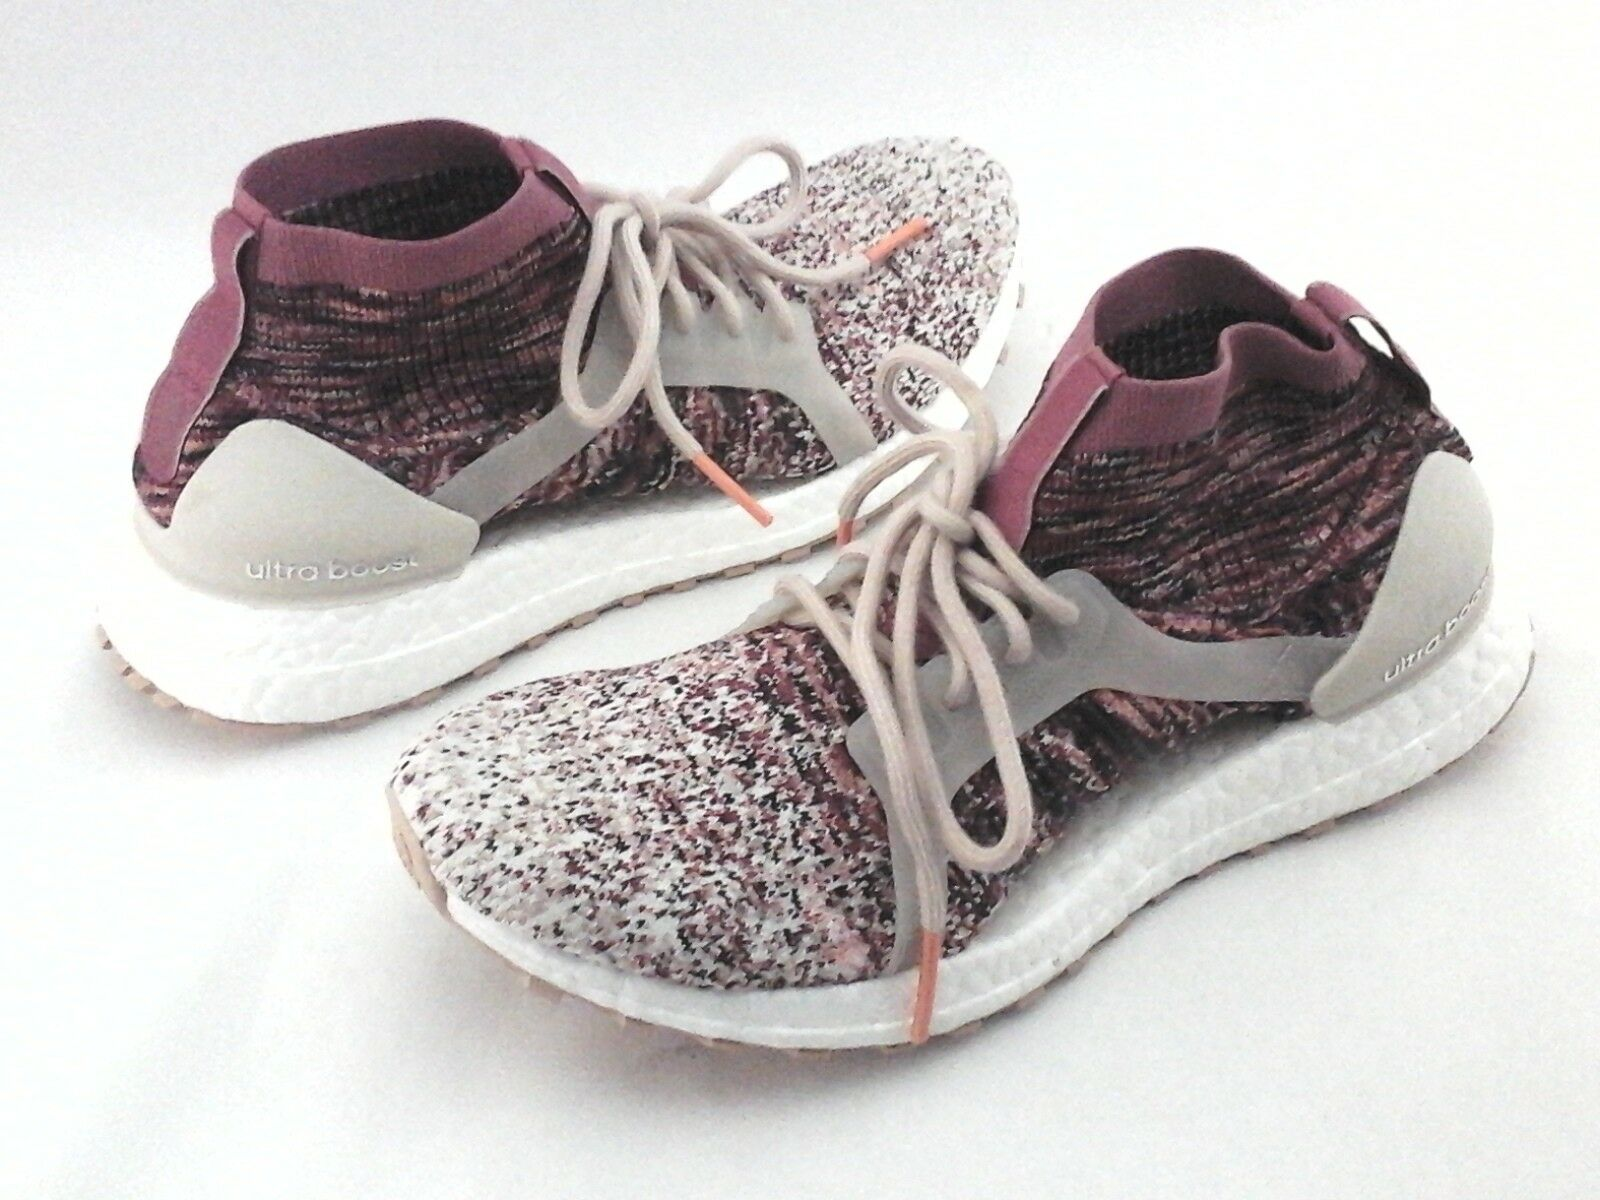 ADIDAS UltraBoost X All Terrain LTD shoes Pink AQ0422 Womens US 7.5 39 1 3 RARE